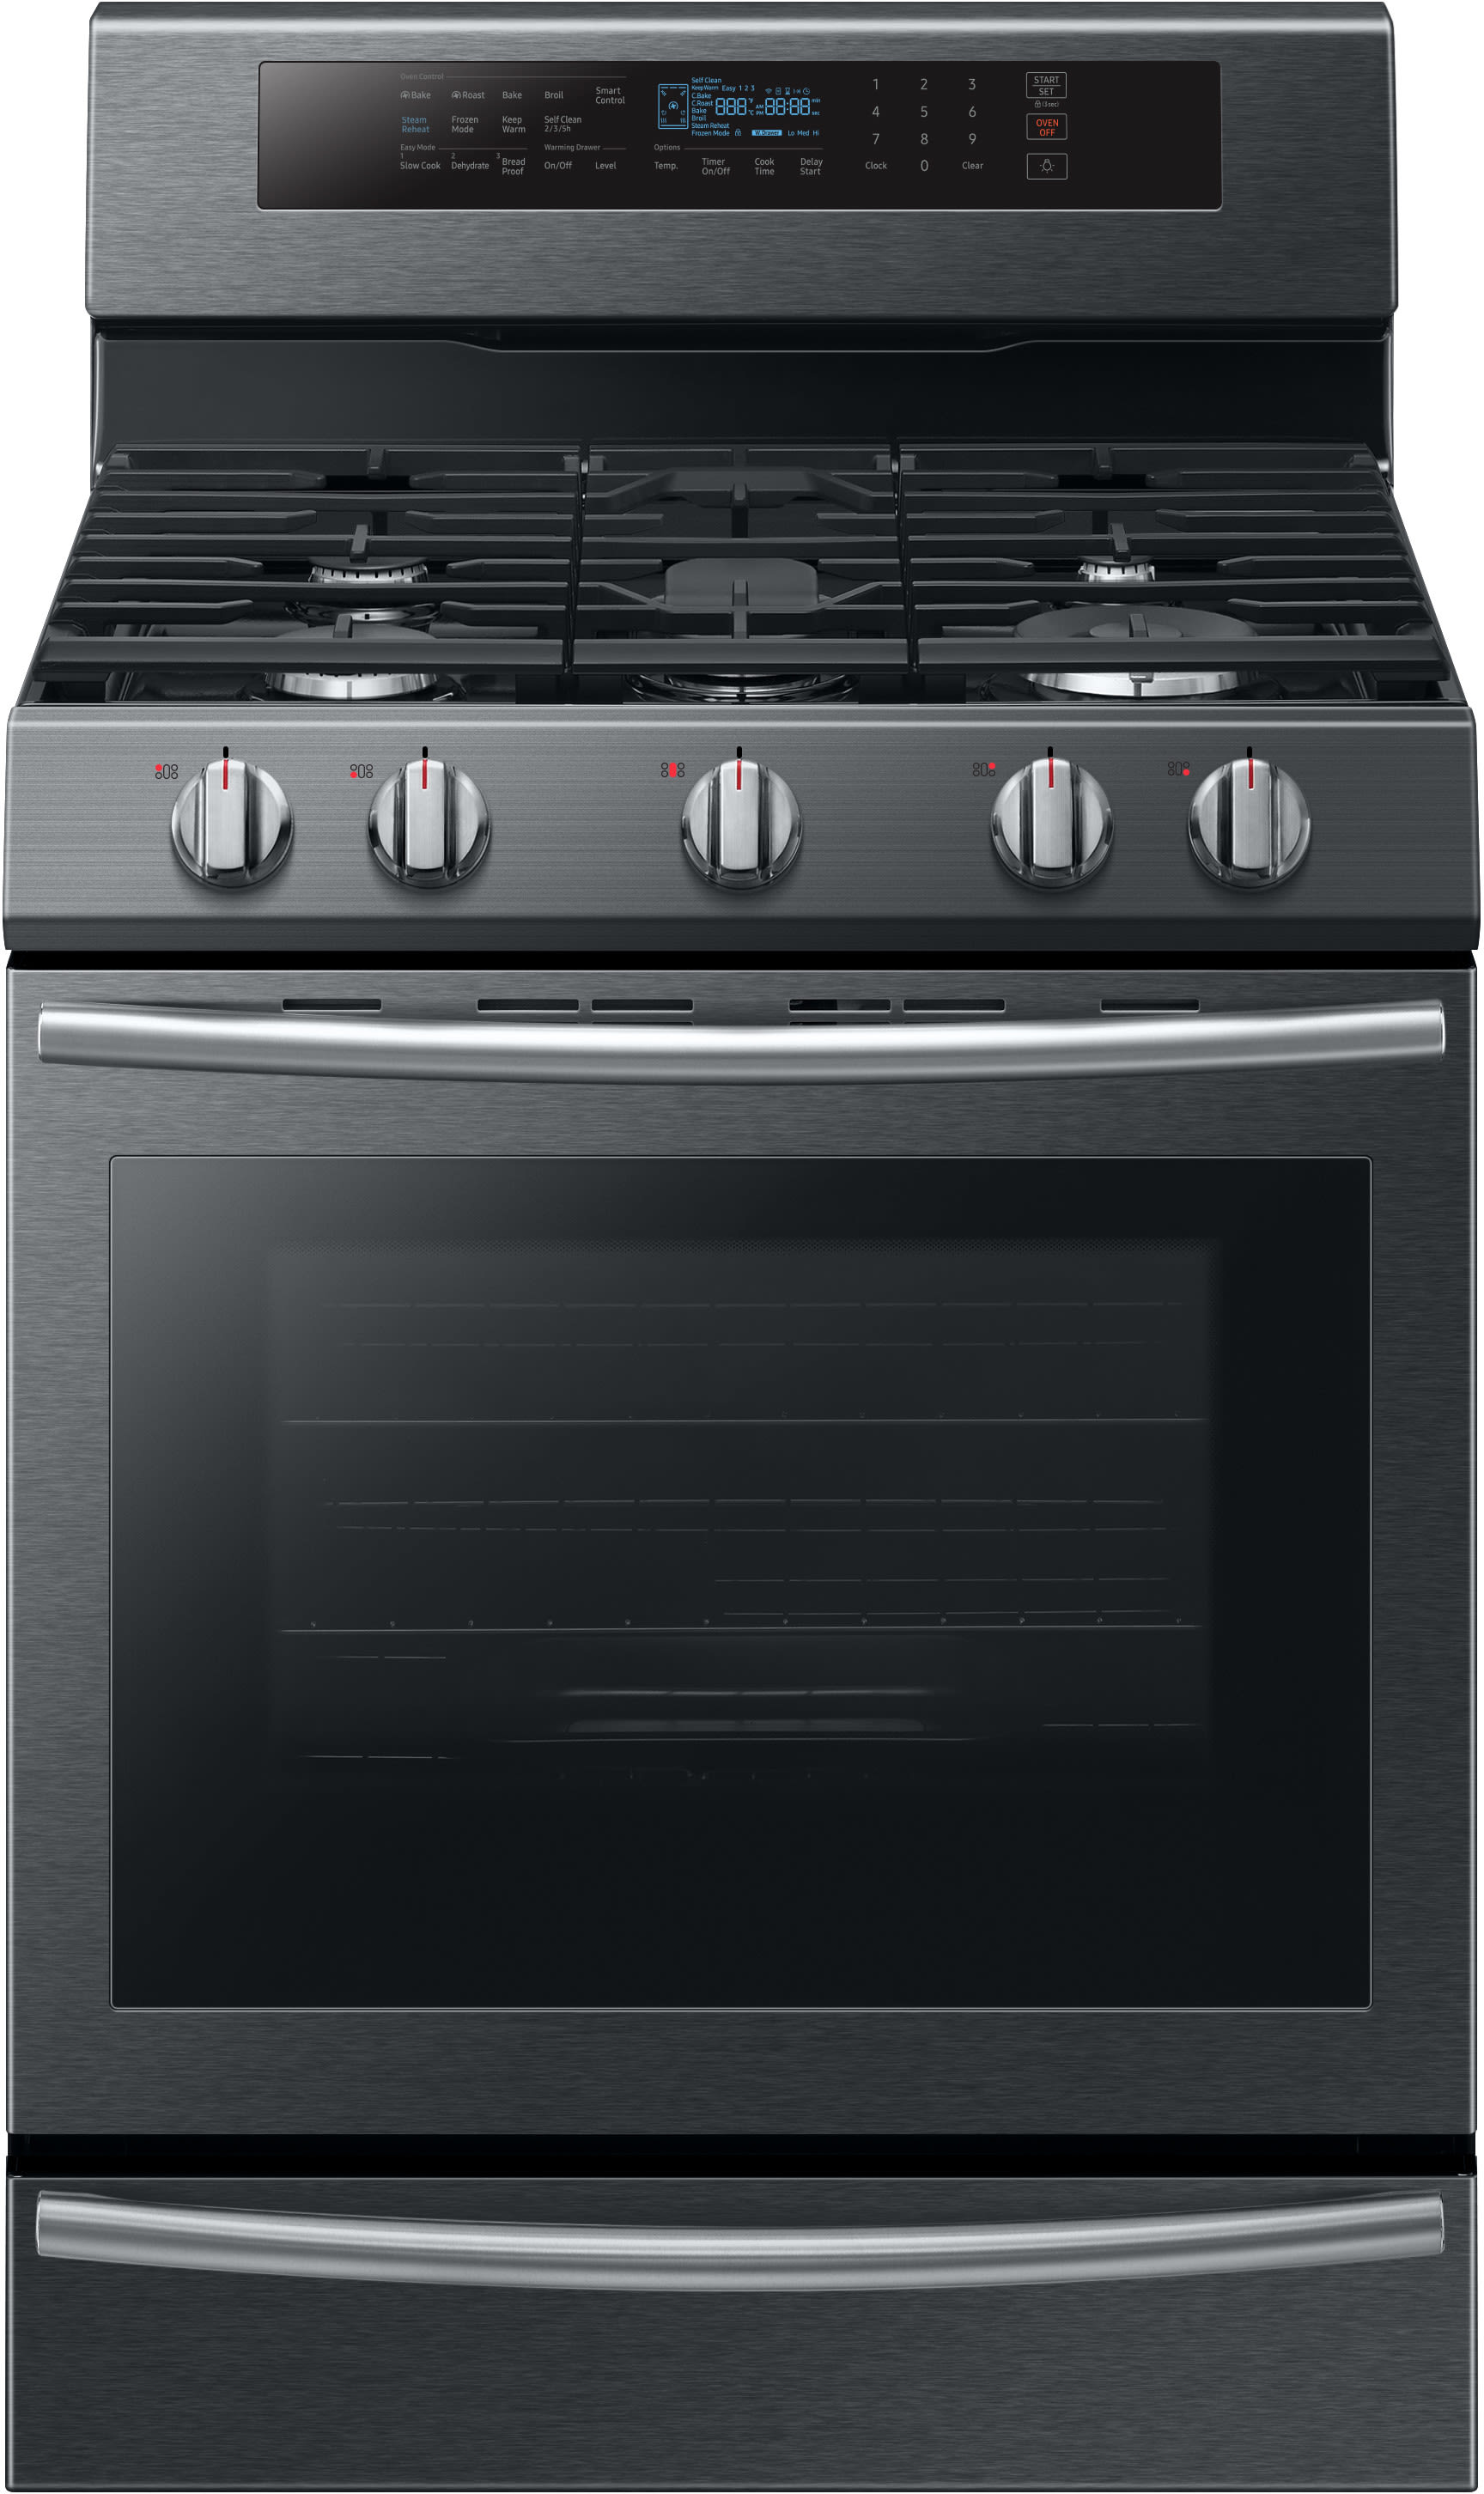 Samsung NX58M6650WG 30 Inch Freestanding Gas Range with True